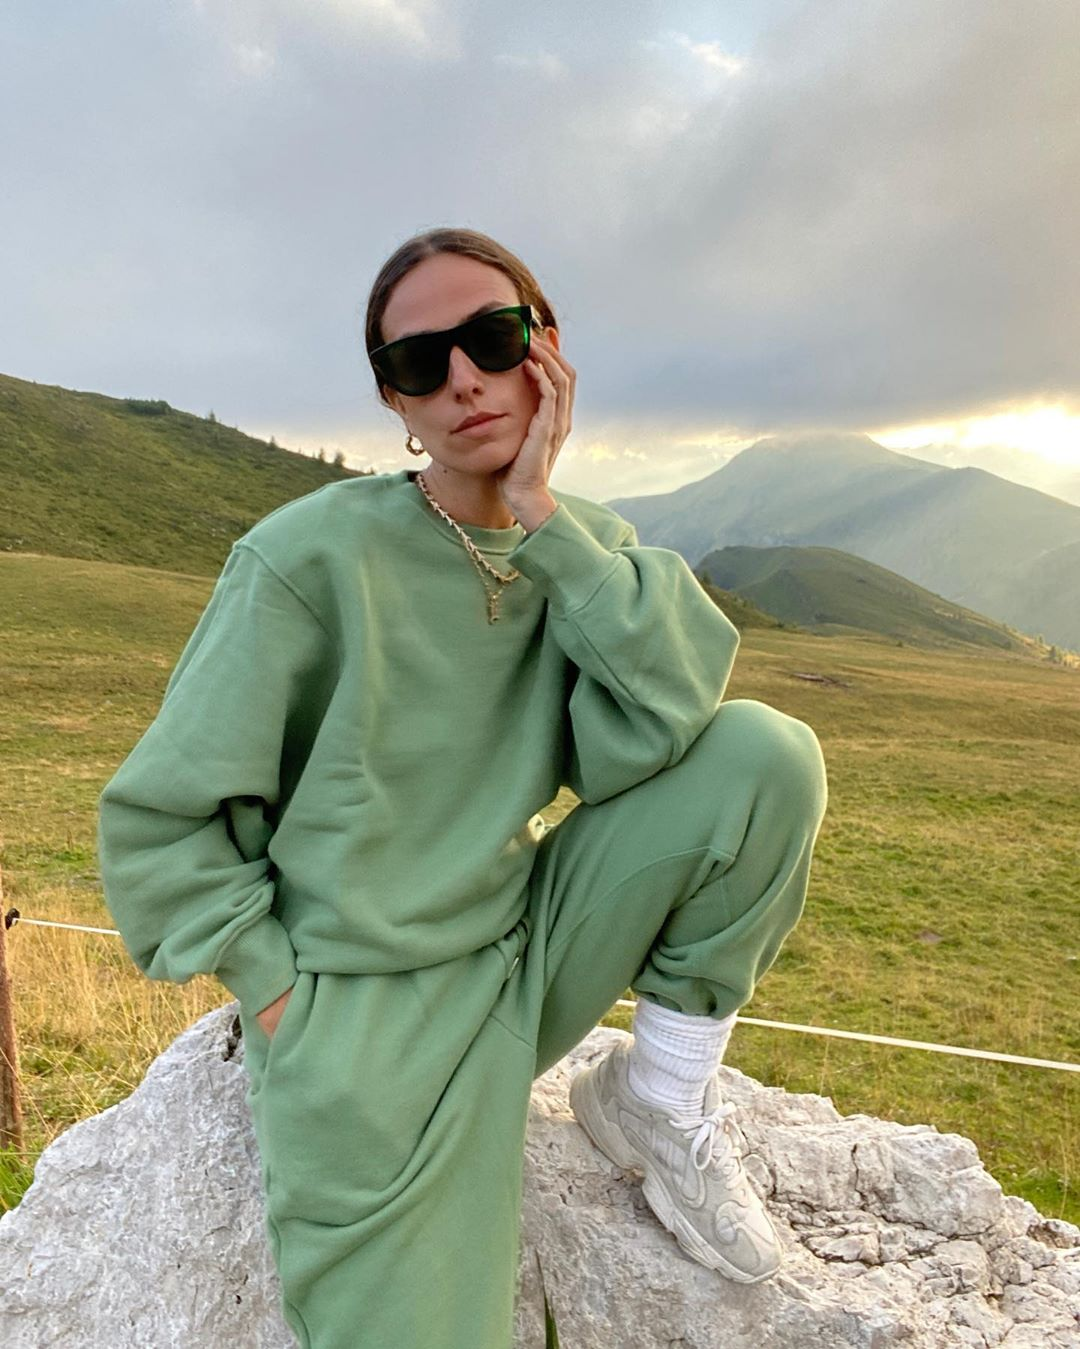 erika-boldrin-frankie-shop-vanessa-padded-shoulder-sweatshirt-and-sweatpants-mossy-green-instagram